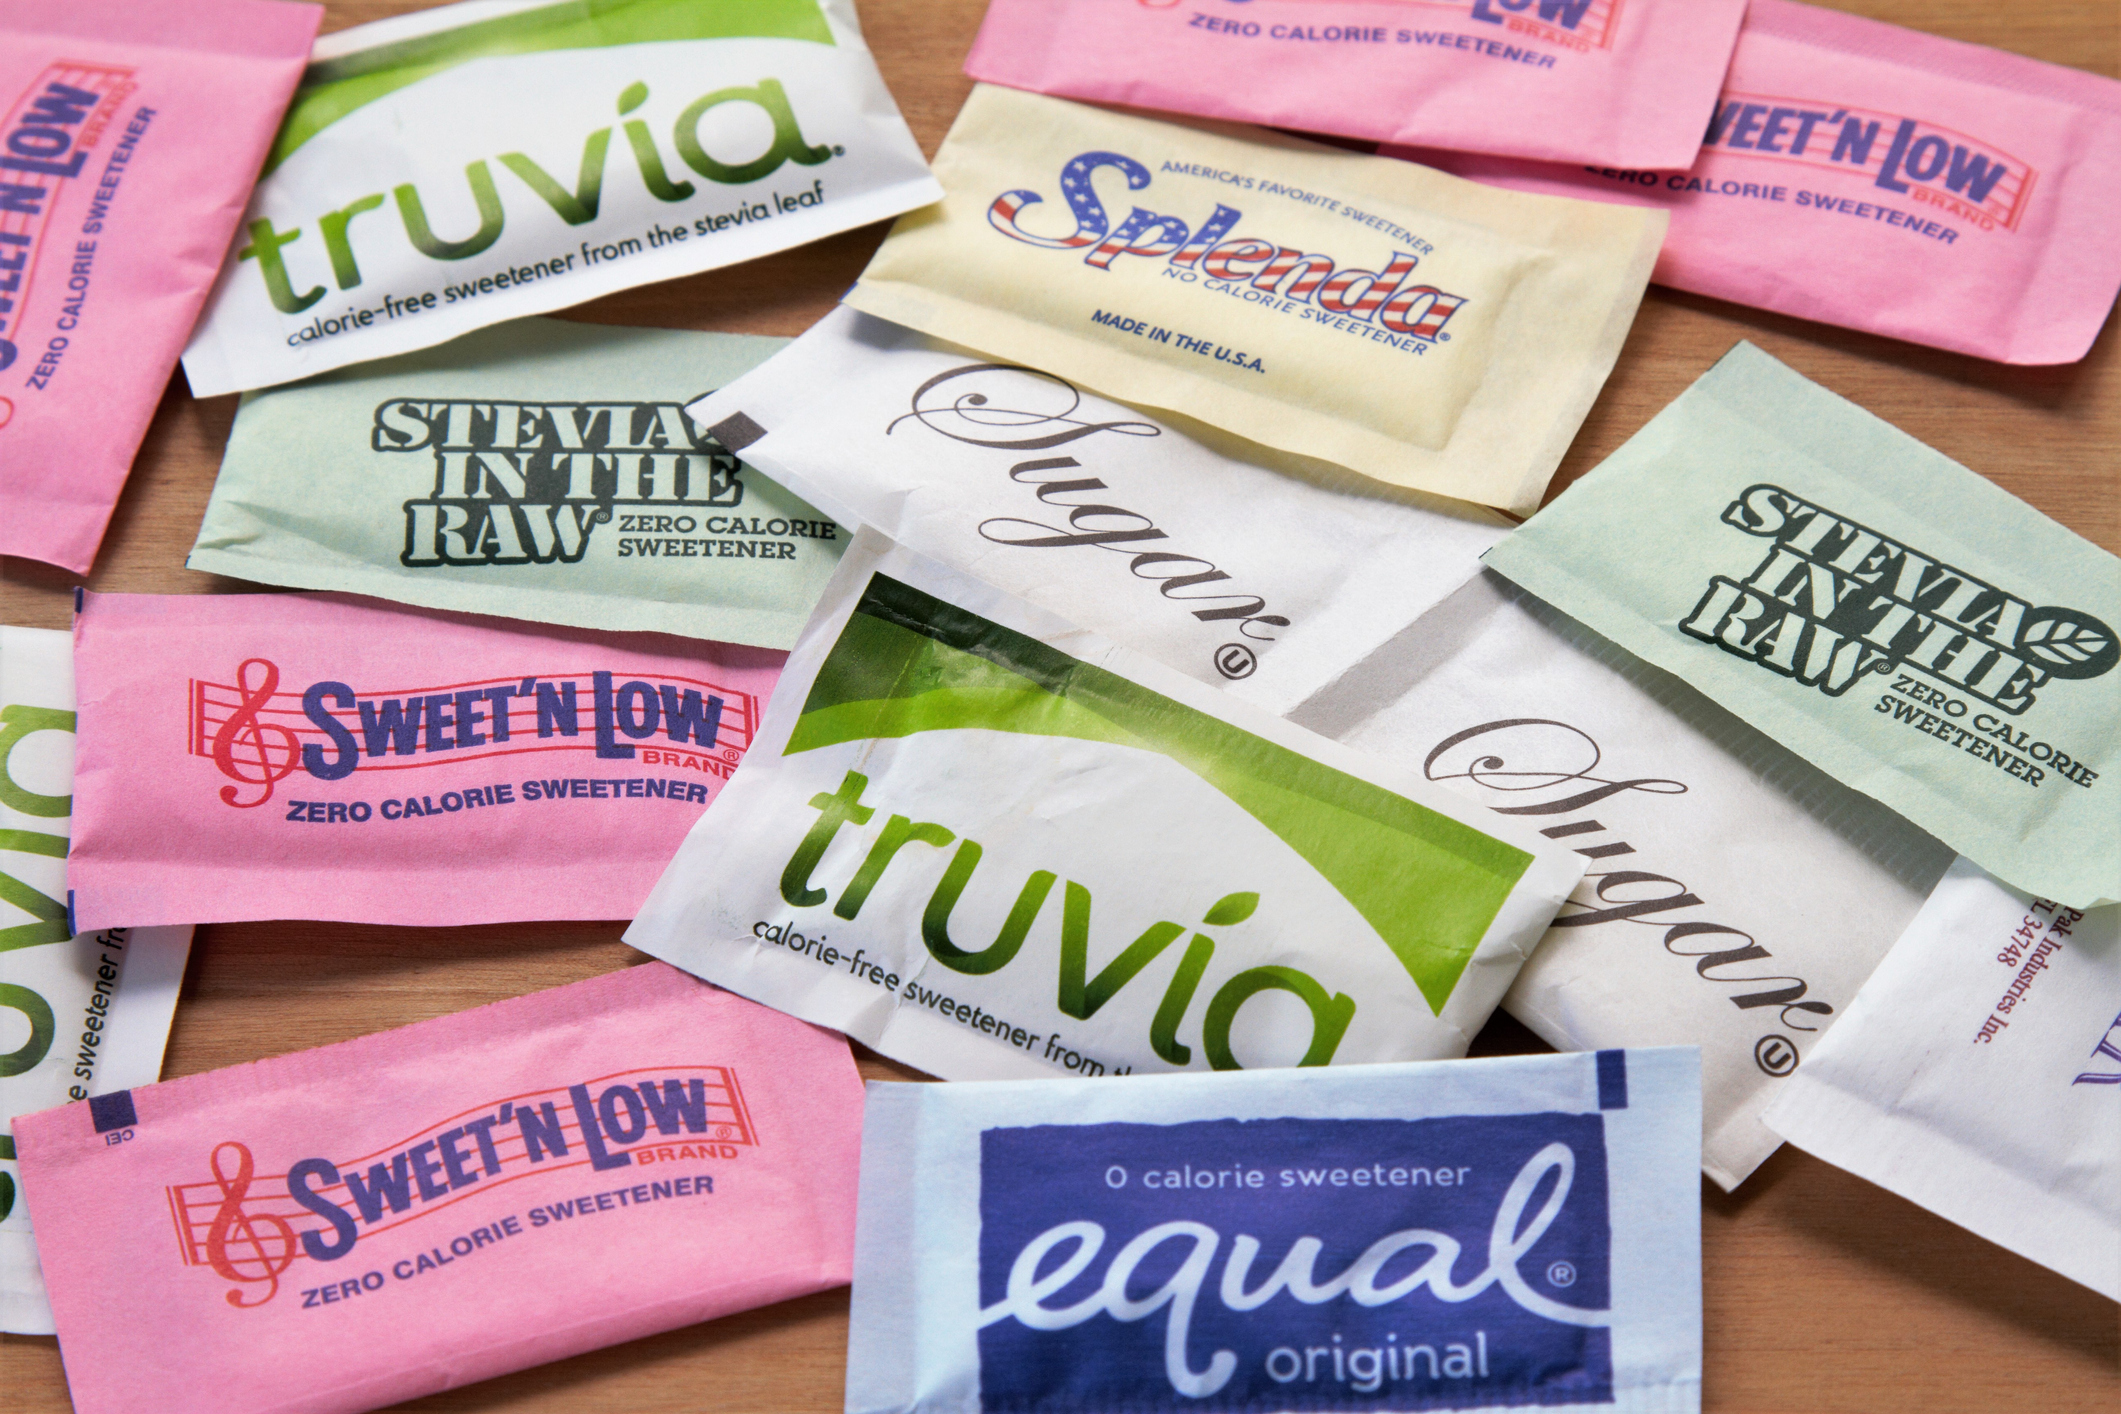 Artificial sweeteners: sugar-free, but at what cost? - Harvard Health Blog  - Harvard Health Publishing